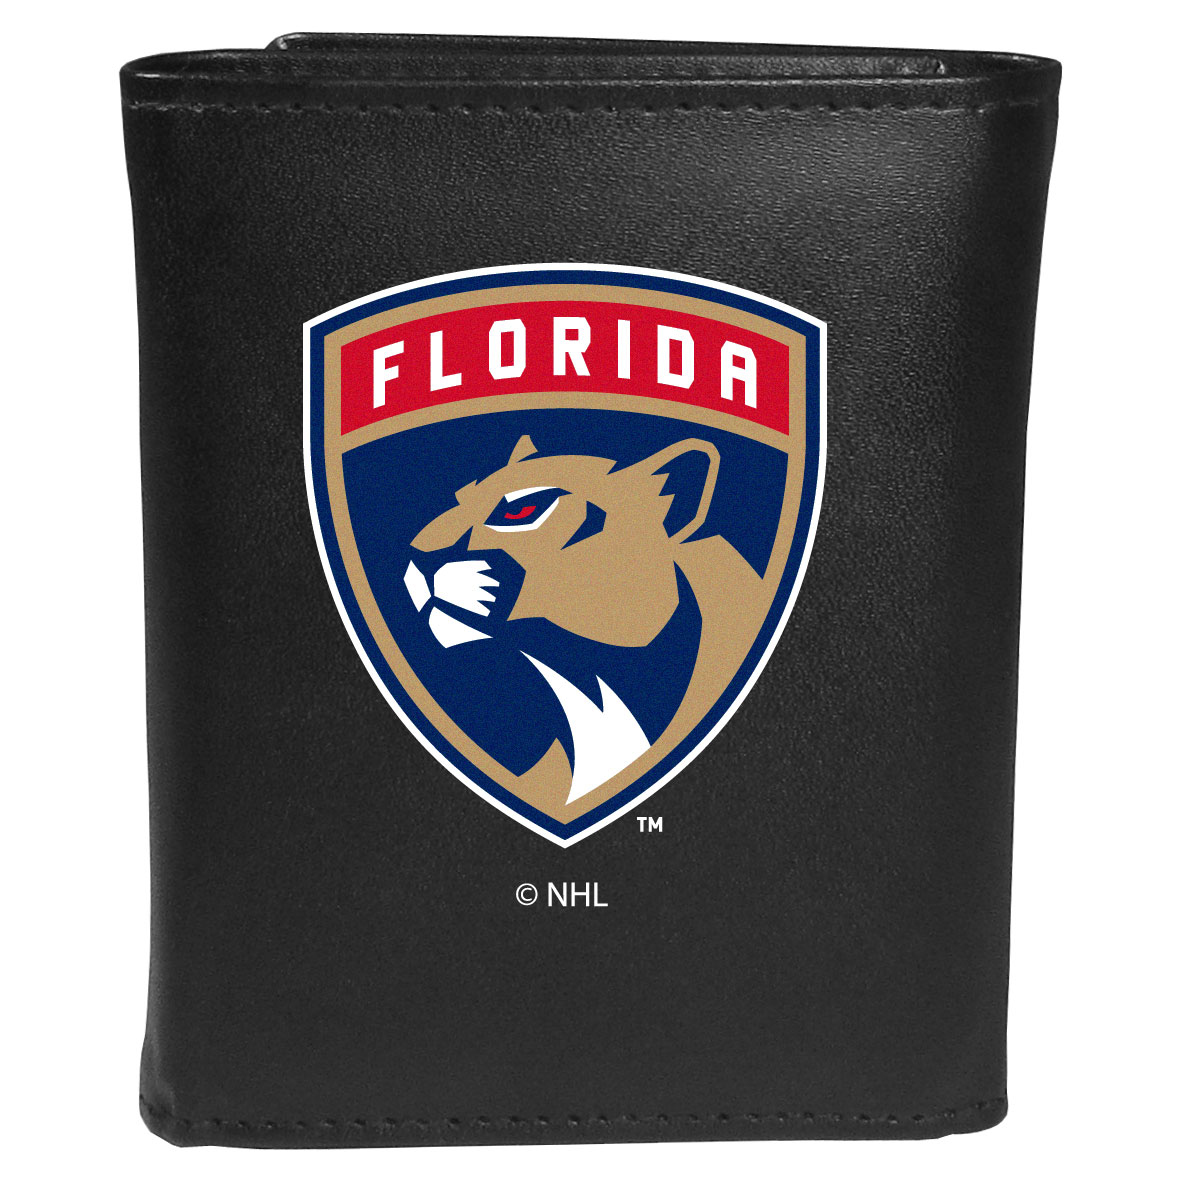 Florida Panthers® Leather Tri-fold Wallet, Large Logo - Our classic fine leather tri-fold wallet is meticulously crafted with genuine leather that will age beautifully so you will have a quality wallet for years to come. This is fan apparel at its finest. The wallet is packed with organizational  features; lots of credit card slots, large billfold pocket, and a window ID slot. The front of the wallet features an extra large Florida Panthers® printed logo.